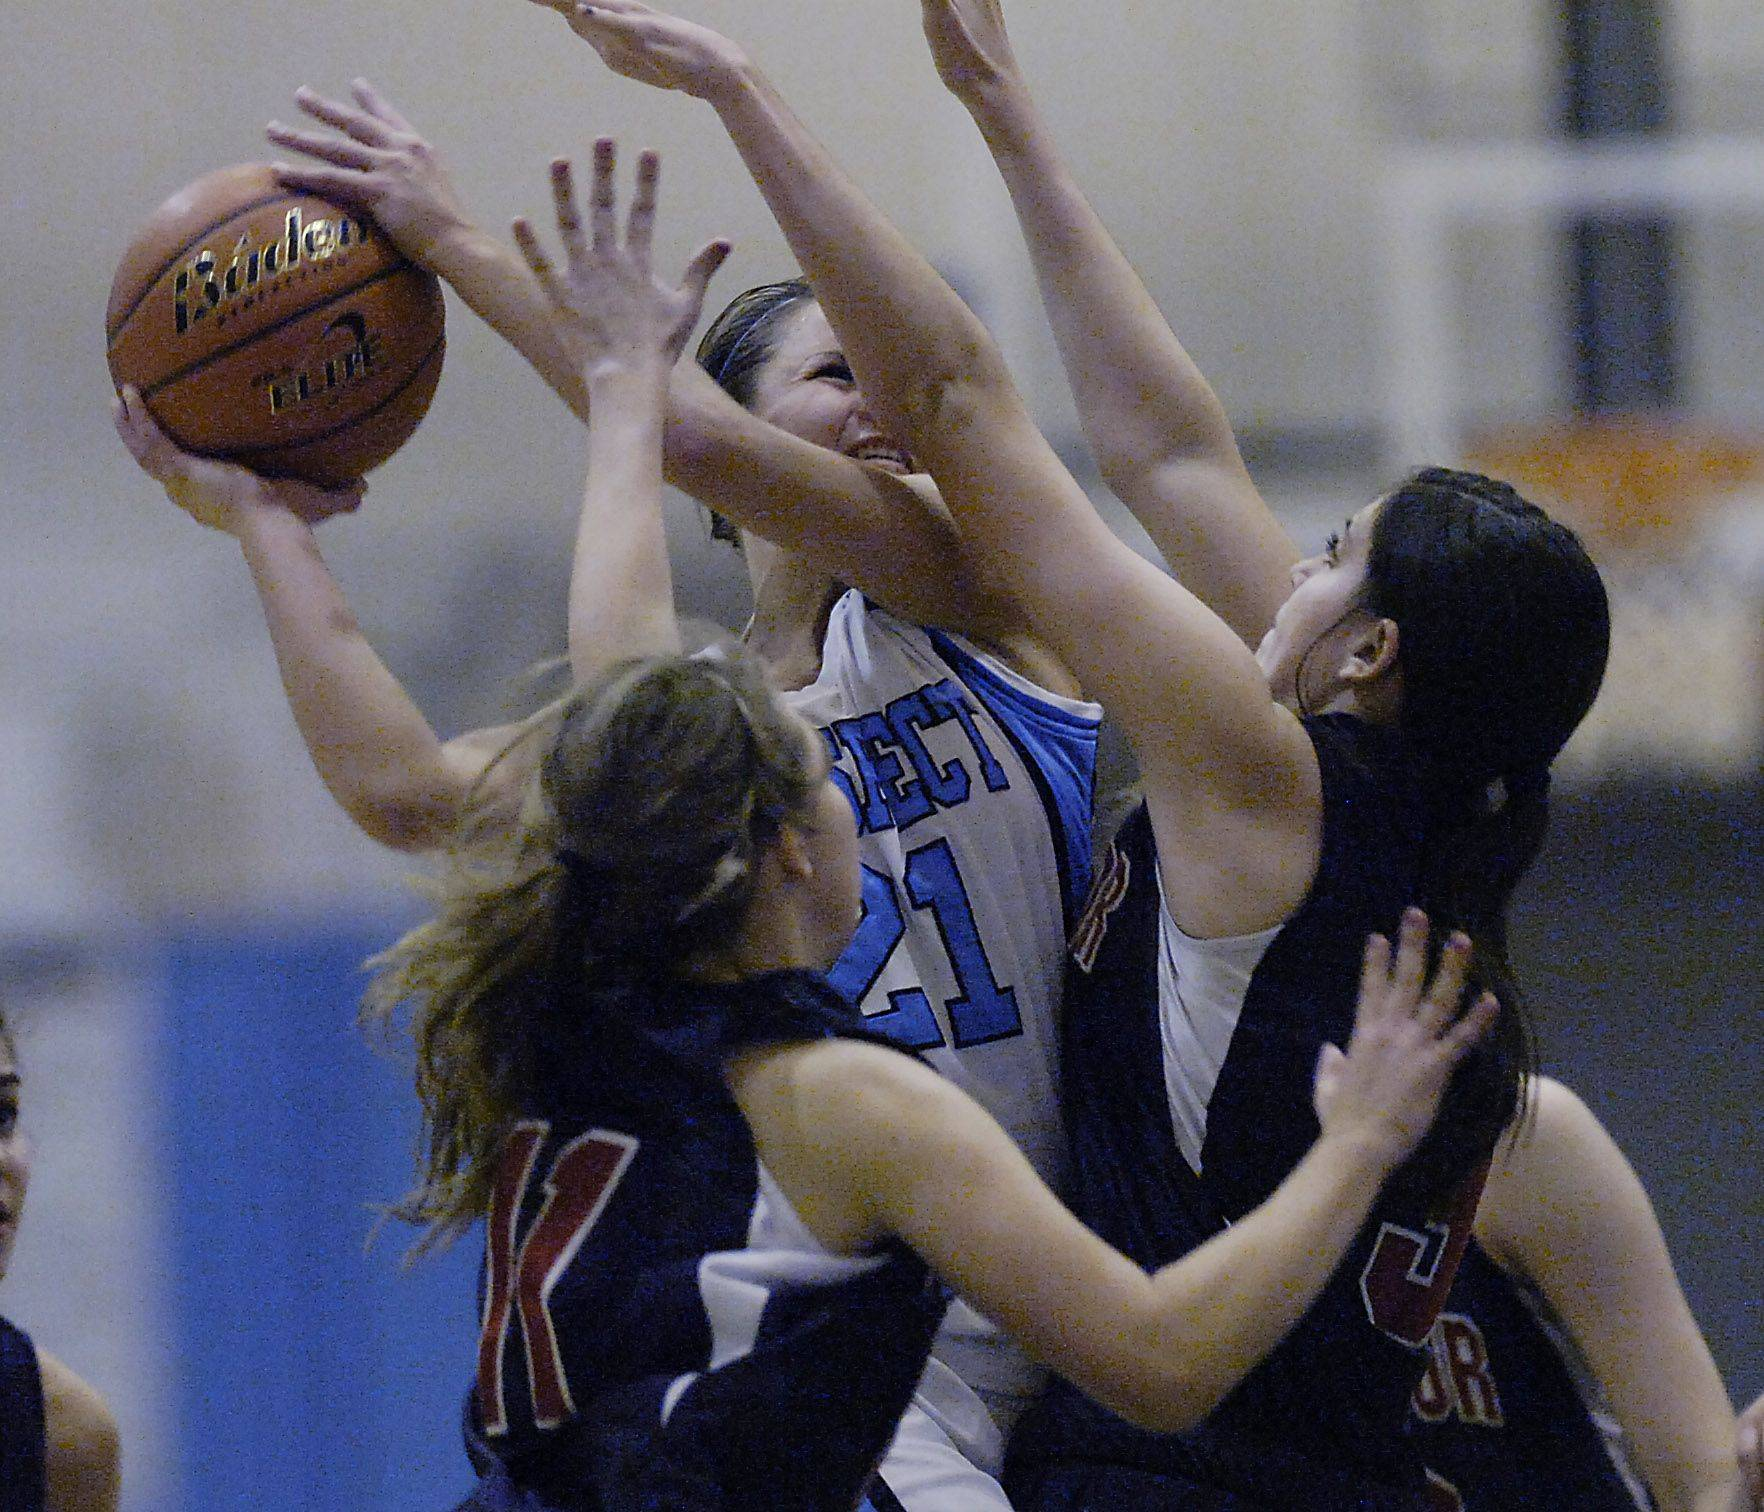 Prospect's Sarah Winans goes up against St. Viator's defense of Julia Frank and Lauren Rooney .